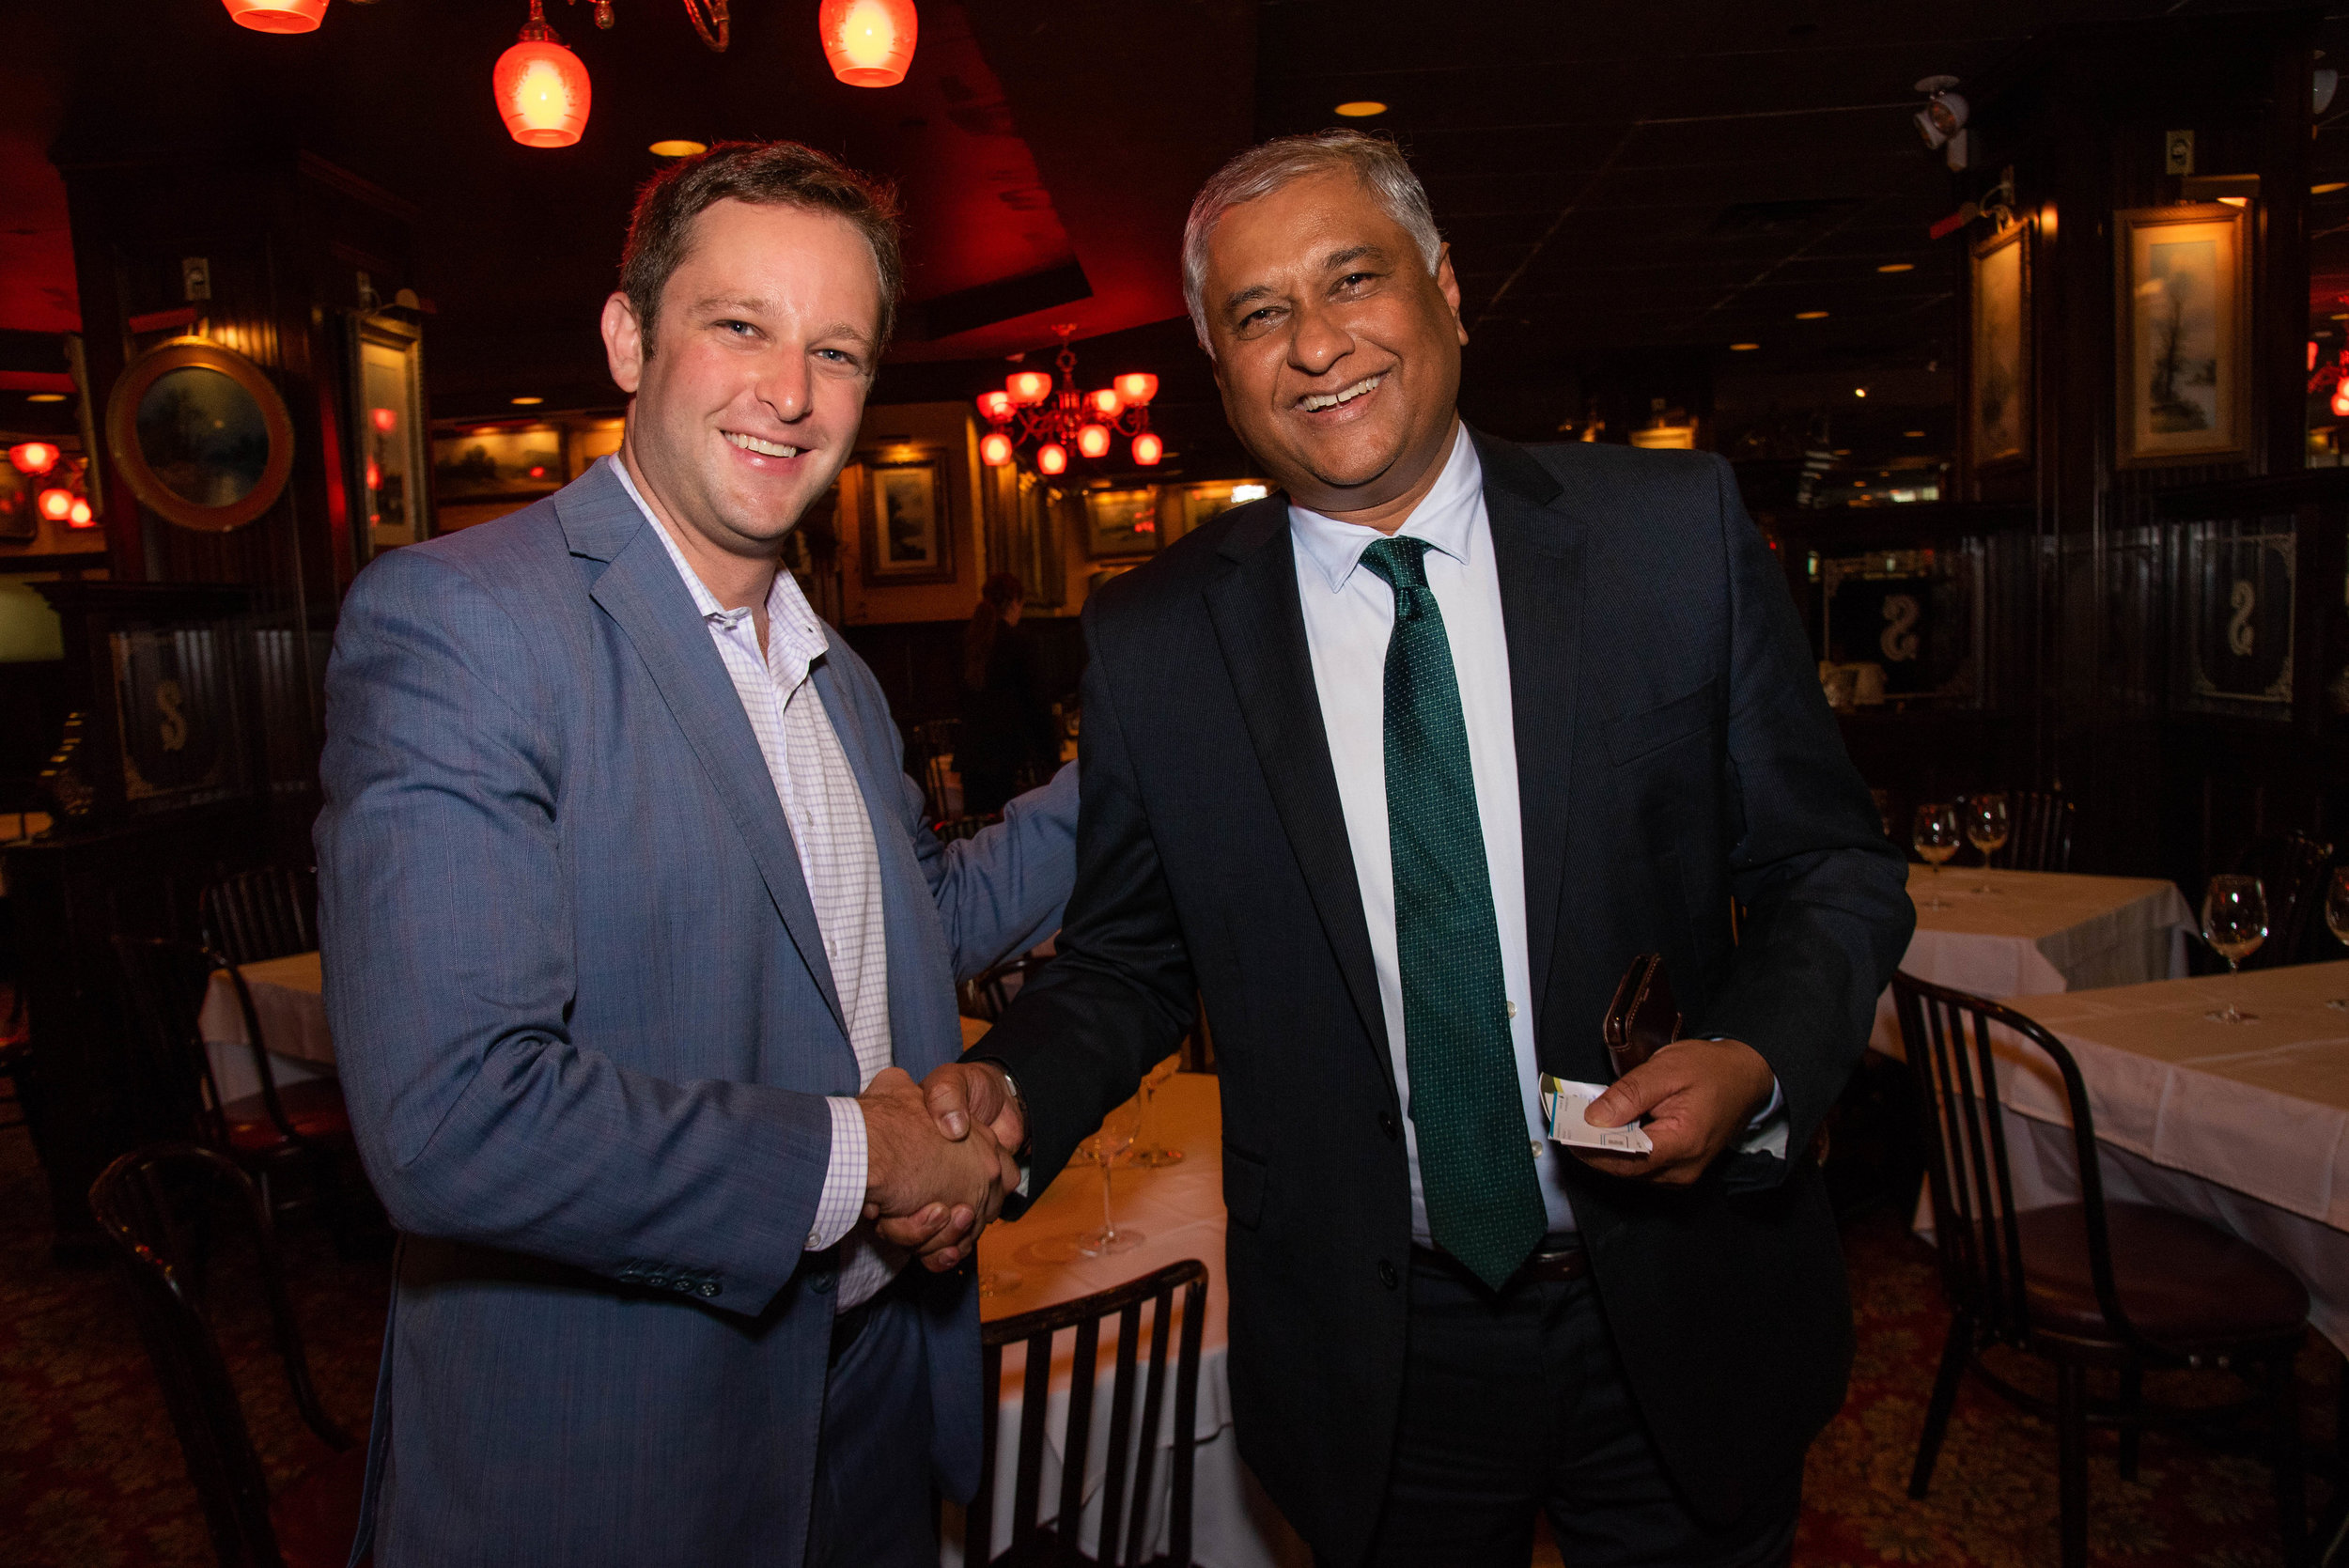 GridMarket CEO Nick Davis bonds with UN Ambassador Satyendra Prassad from Fiji over their shared optimism for the future.